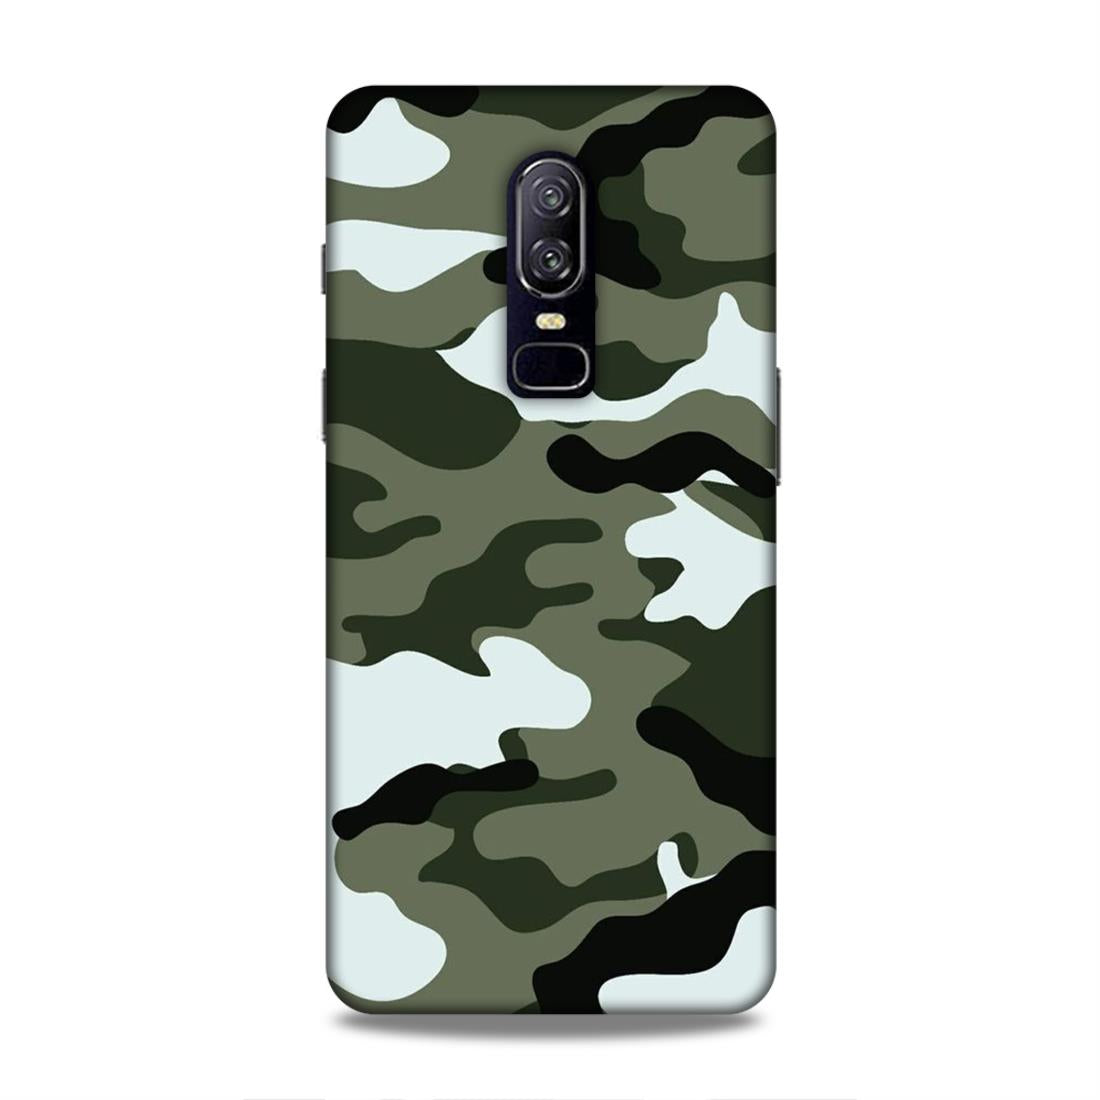 Phone Cases,Oneplus Phone Cases,OnePlus 6,Gaming